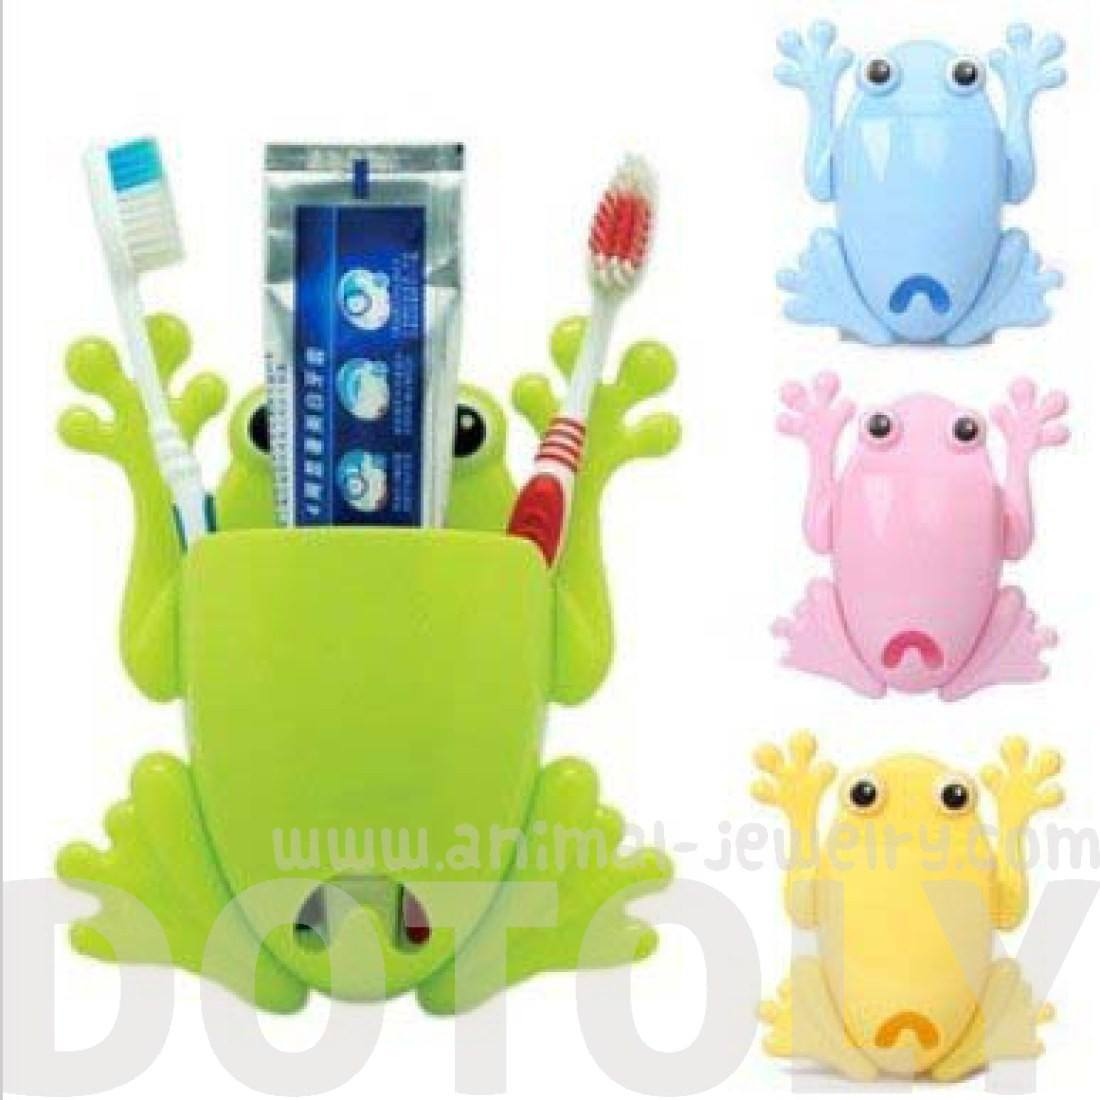 Cute Frog Shaped Toothbrush Holder Make Up Bathroom Organizer in GreenFrog Shaped Toothbrush Holder Make Up Bathroom Organizer in Yellow